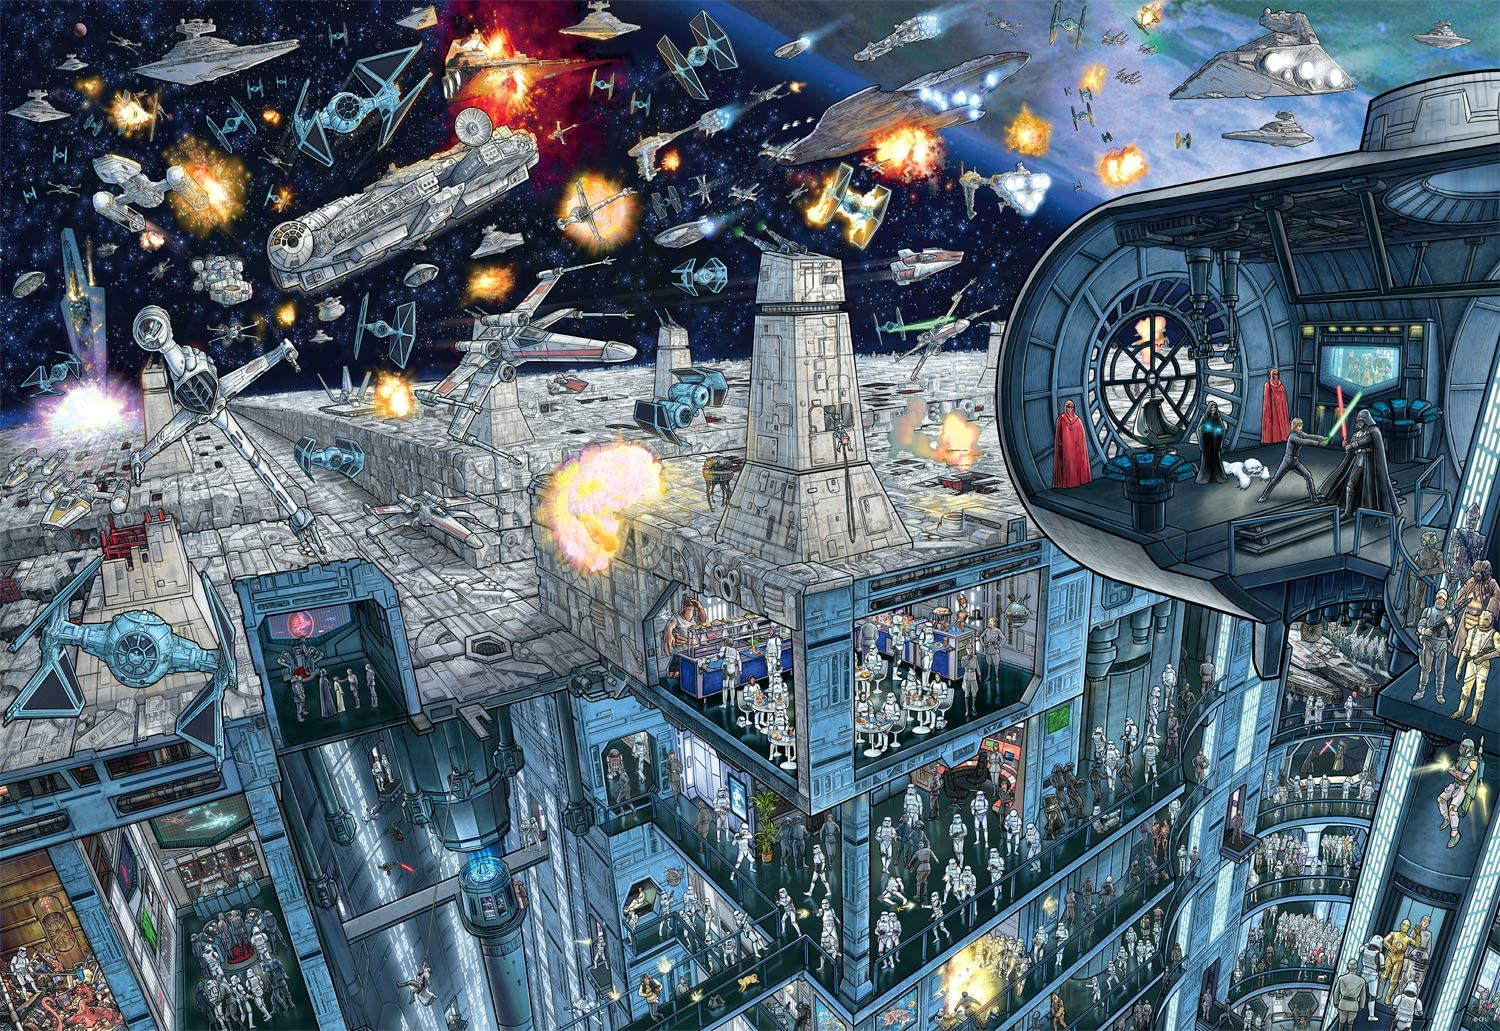 Star Wars Raleigh Sale SALE% OFF Mall - Search Inside: 2000 Jigsaw Puzzle Piece Death